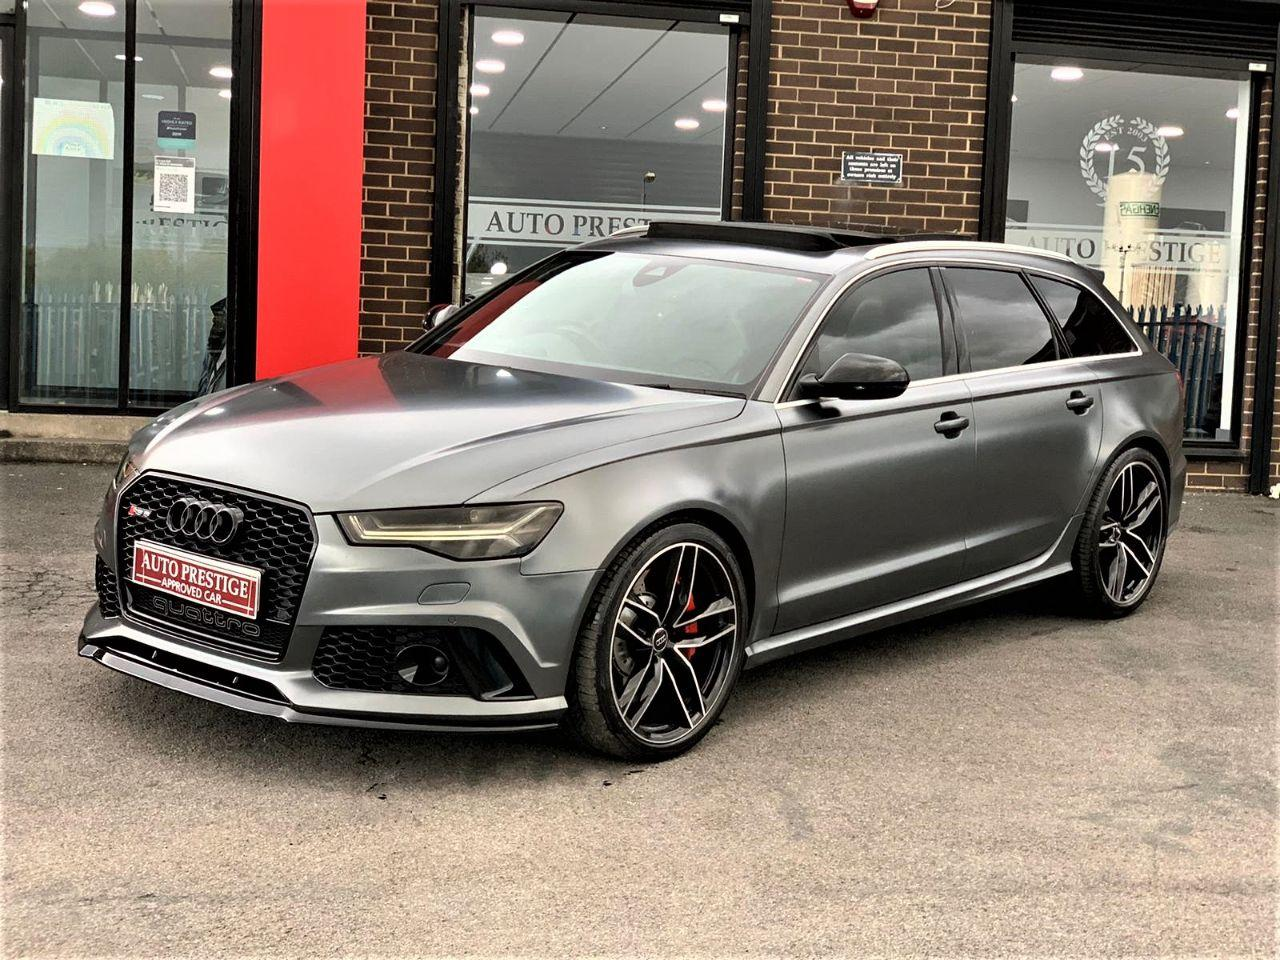 Audi RS6 4.0T FSI Quattro 5dr Tip Auto HUGE SPEC RARE FACTORY MATT GREY PAN ROOF Estate Petrol Grey at Autoprestige Bradford